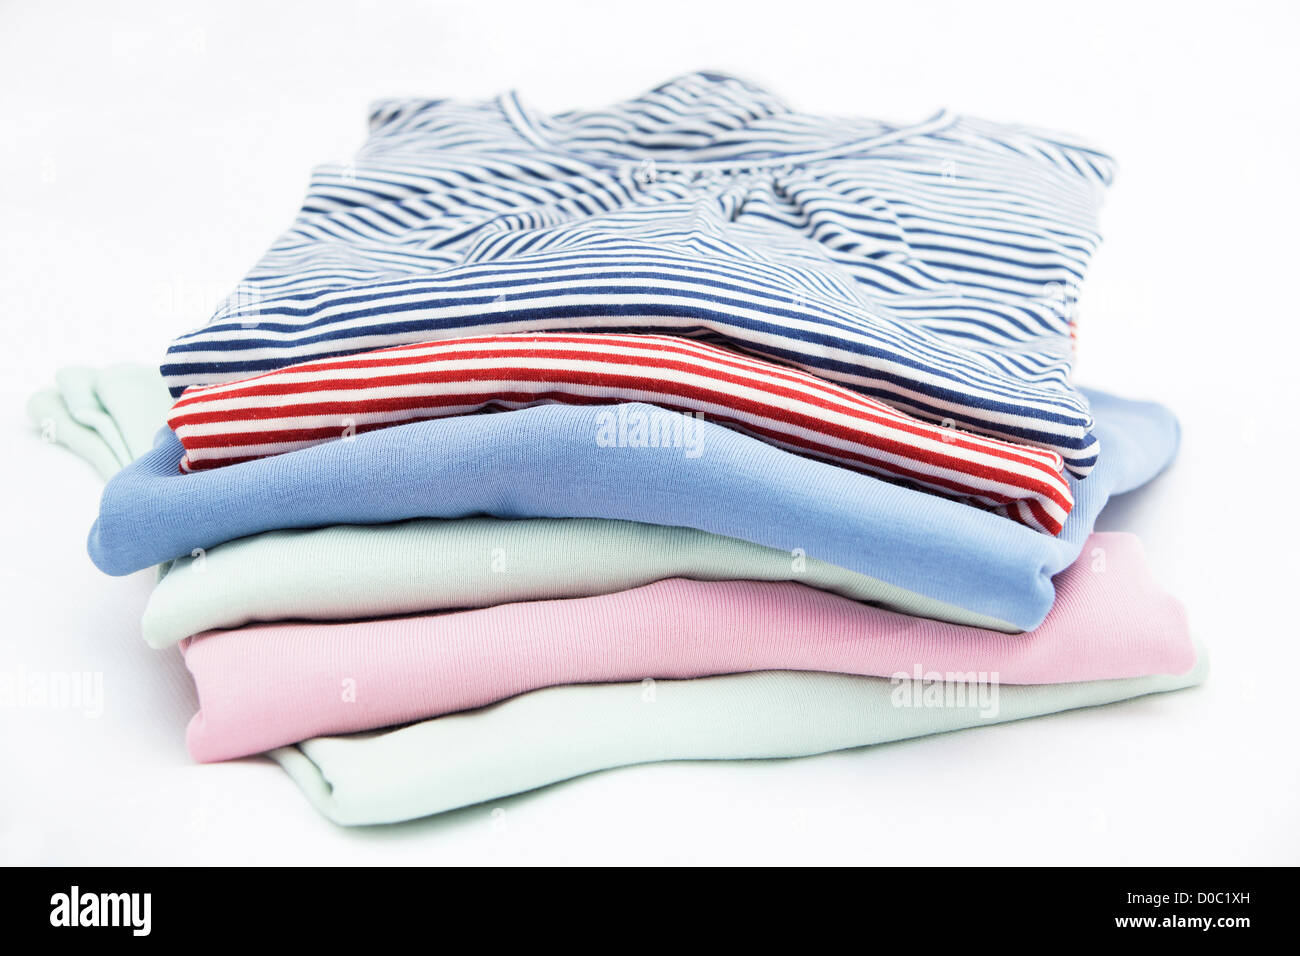 Pile of ladies jumpers / sweaters / tops isolated on a white background - Stock Image